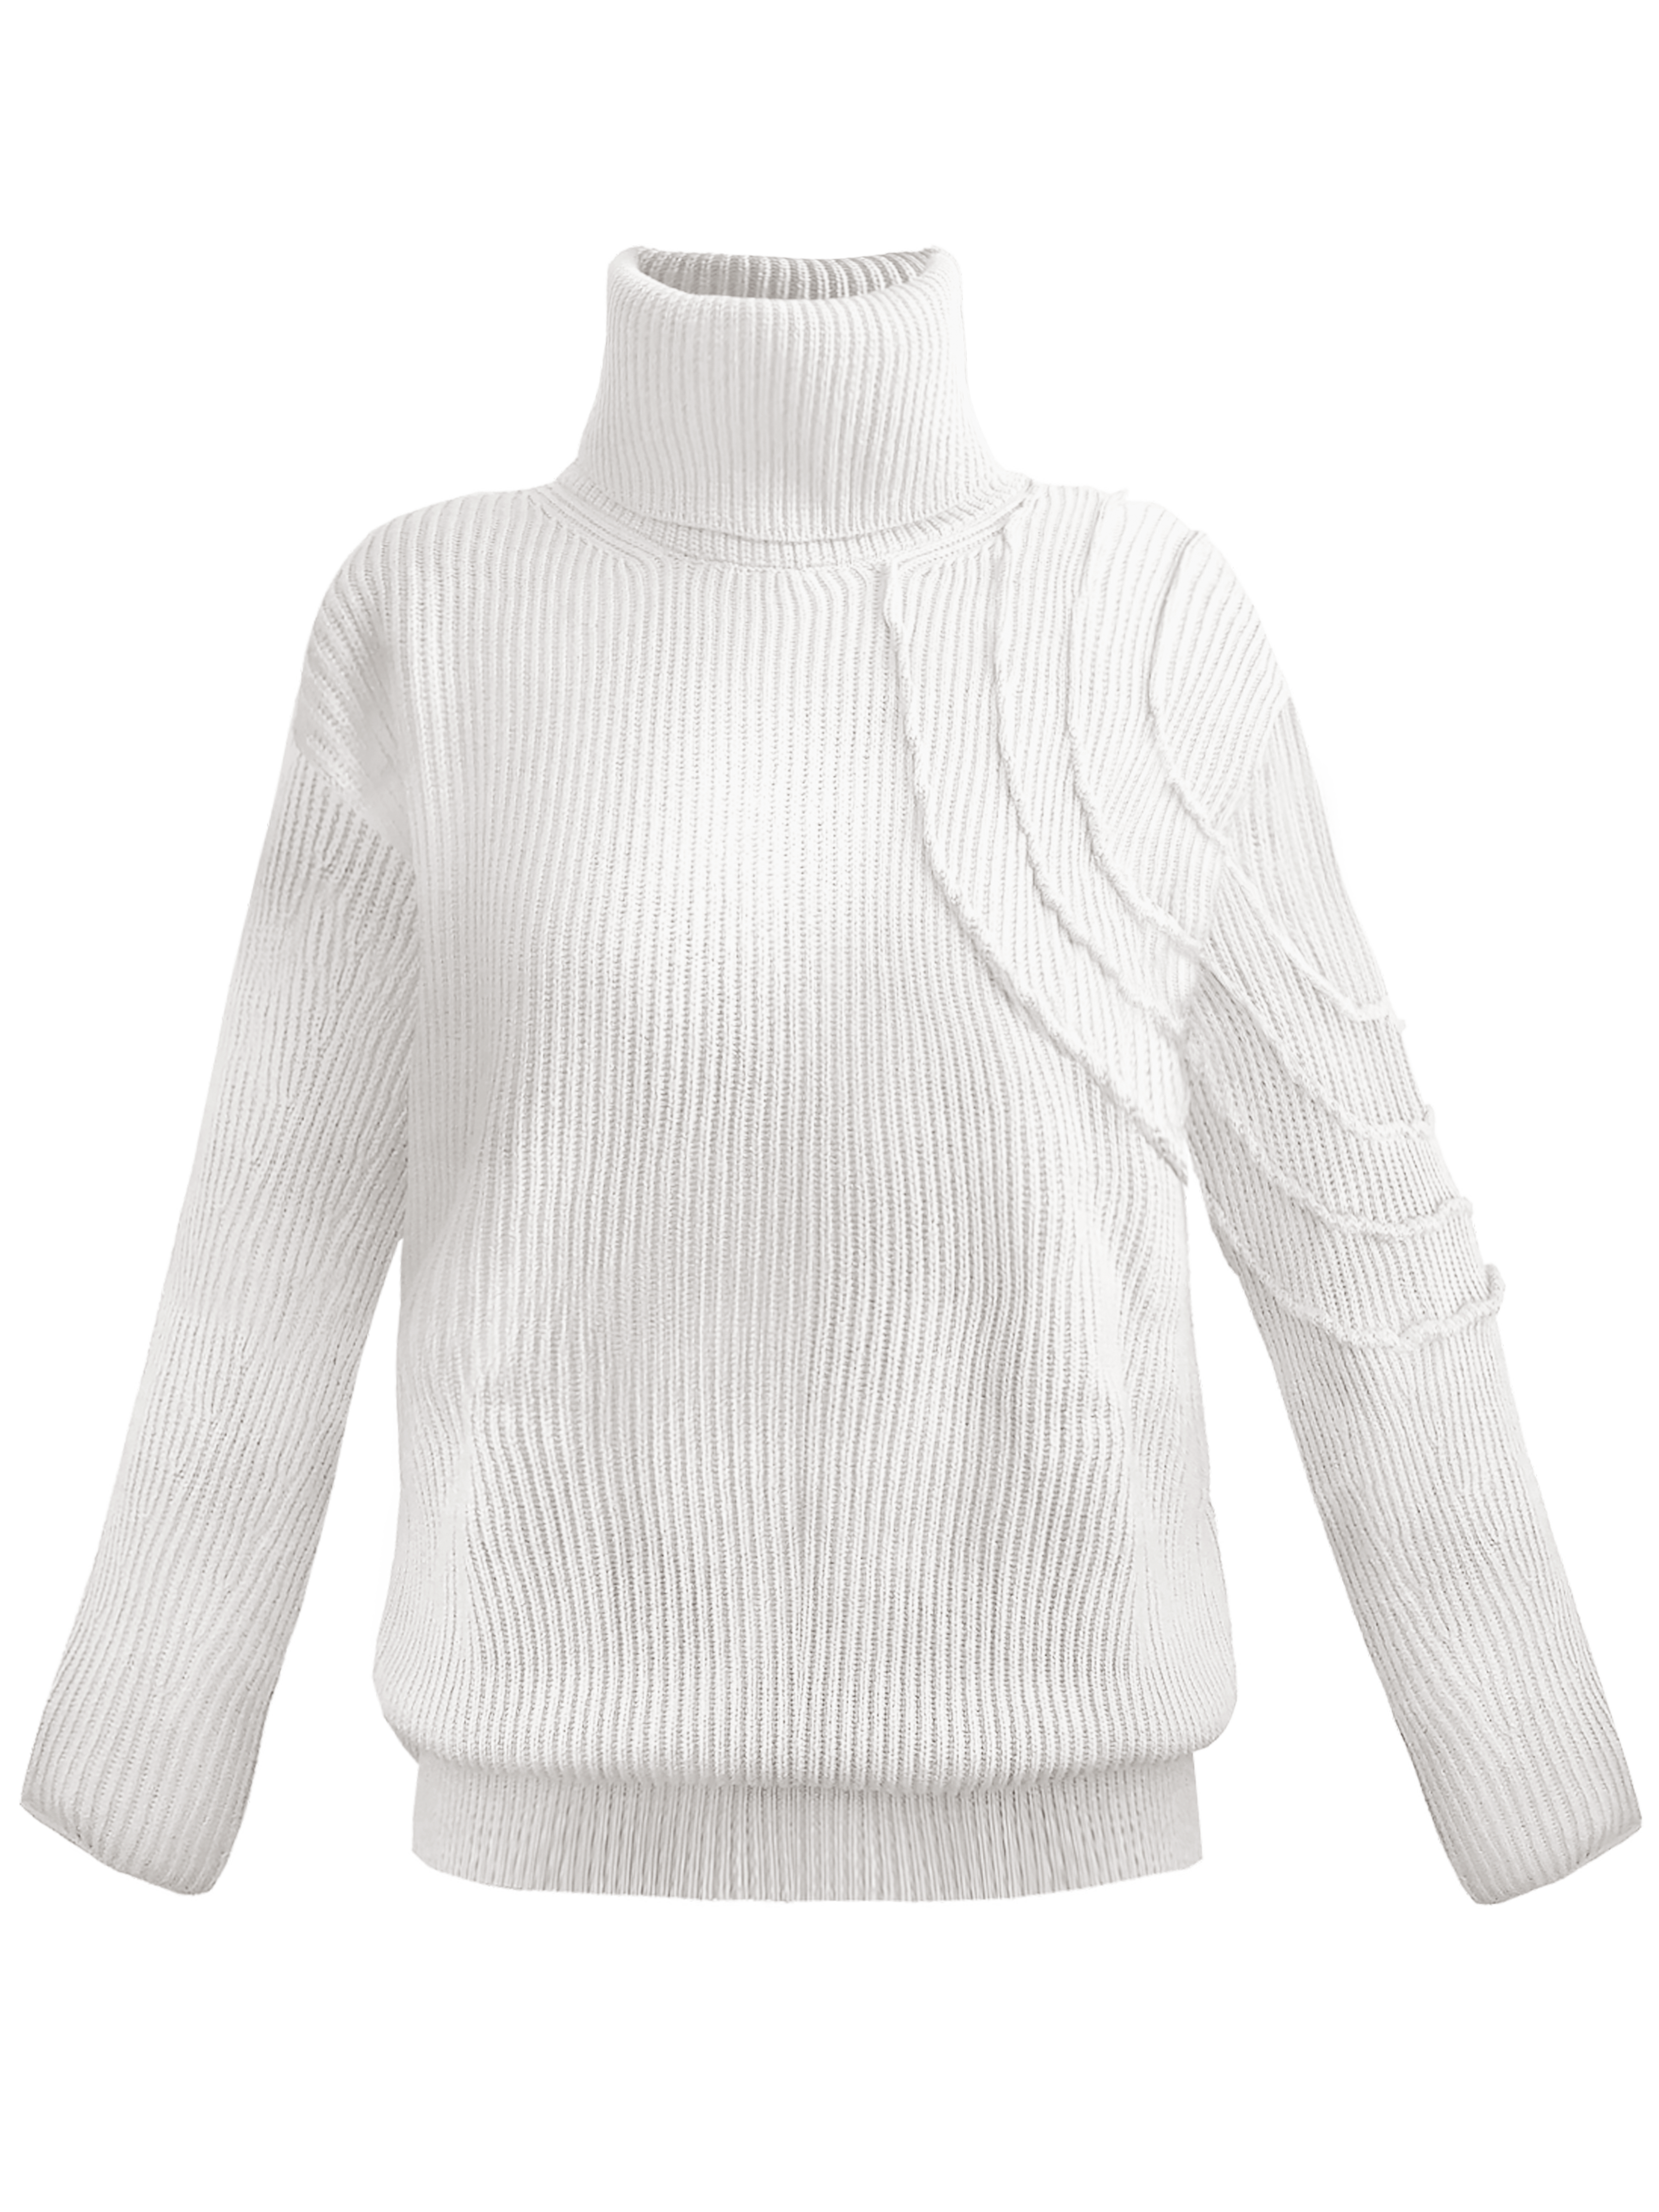 Lucid Turtleneck - White by Georgia Hardinge on curated-crowd.com